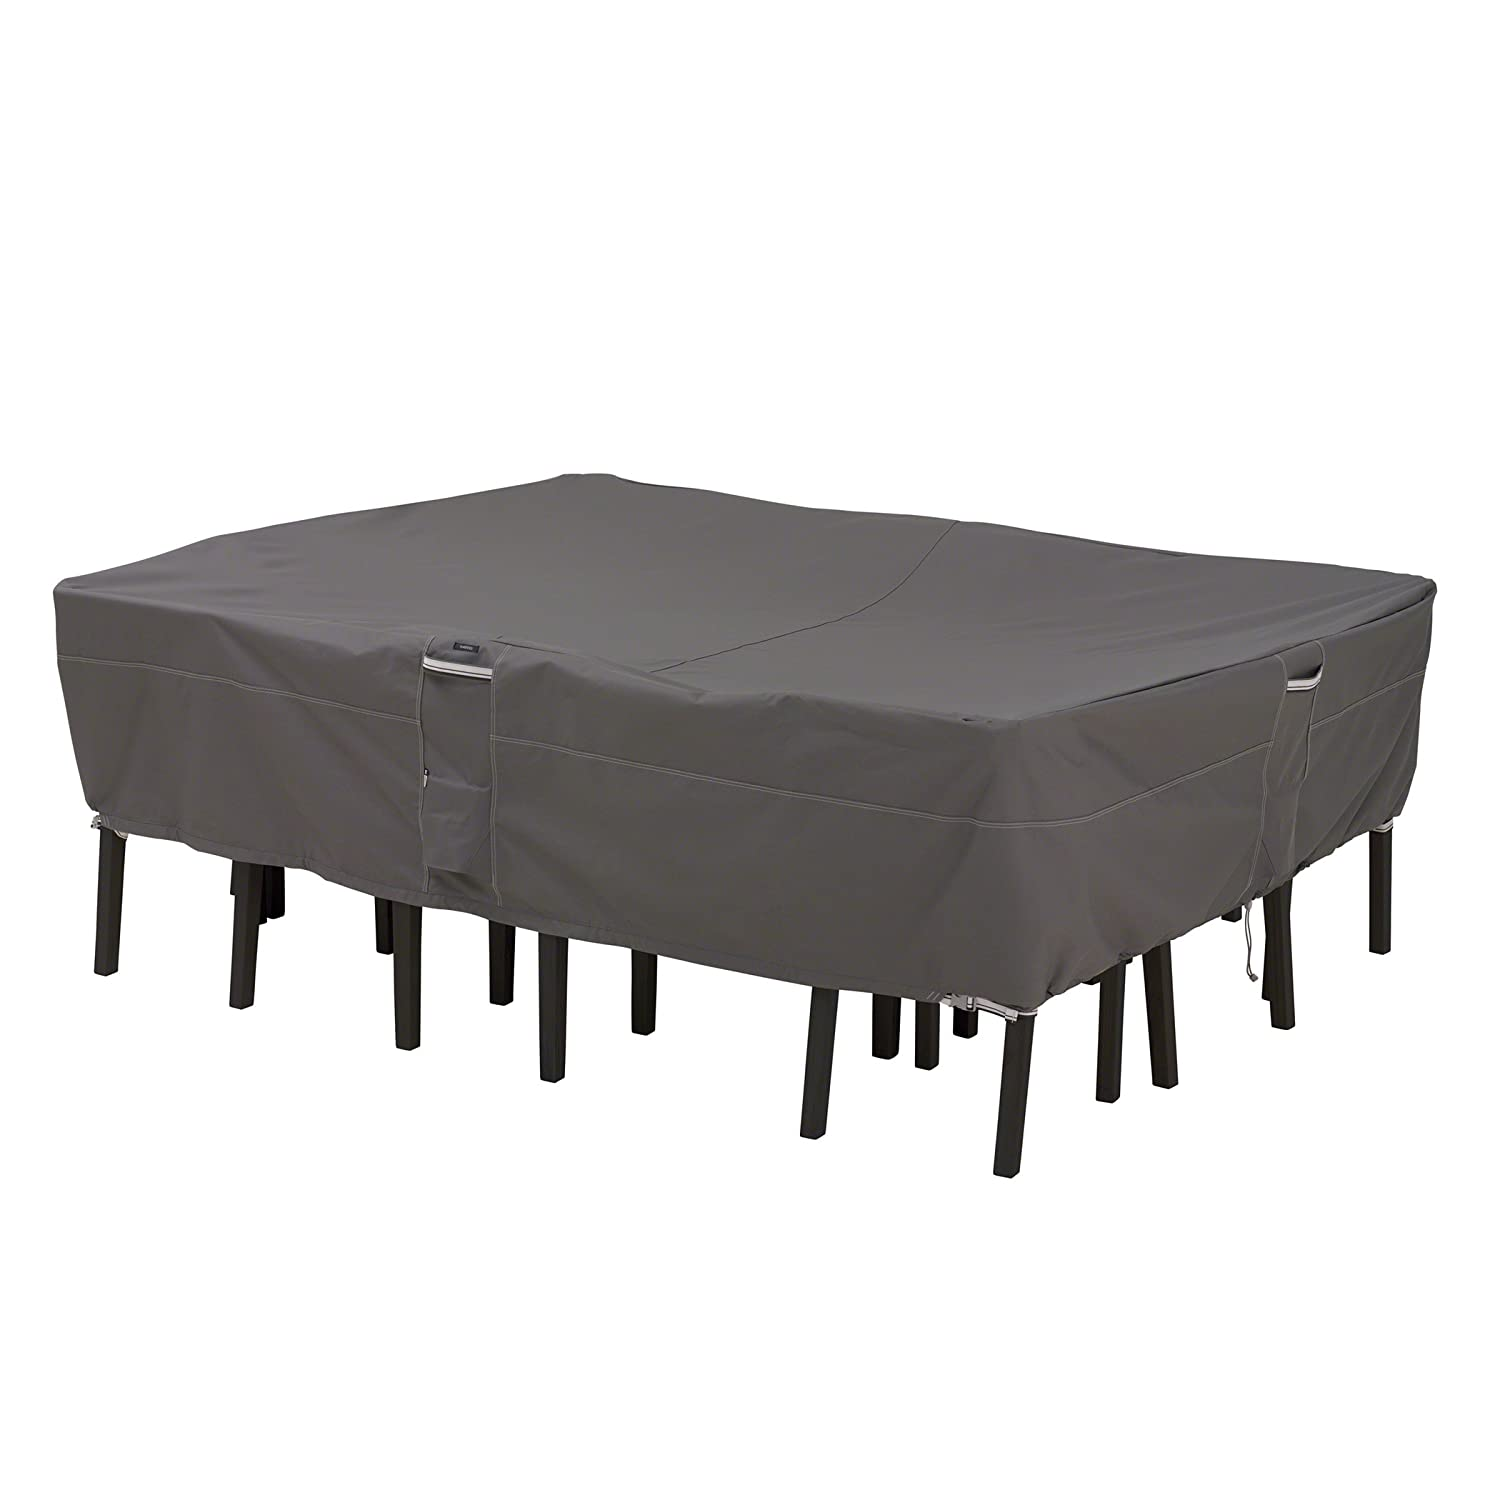 covers for patio furniture. Amazon.com : Classic Accessories Ravenna Rectangular/Oval Patio Table \u0026 Chair Set Cover - Premium Outdoor Furniture With Durable And Water Resistant Covers For